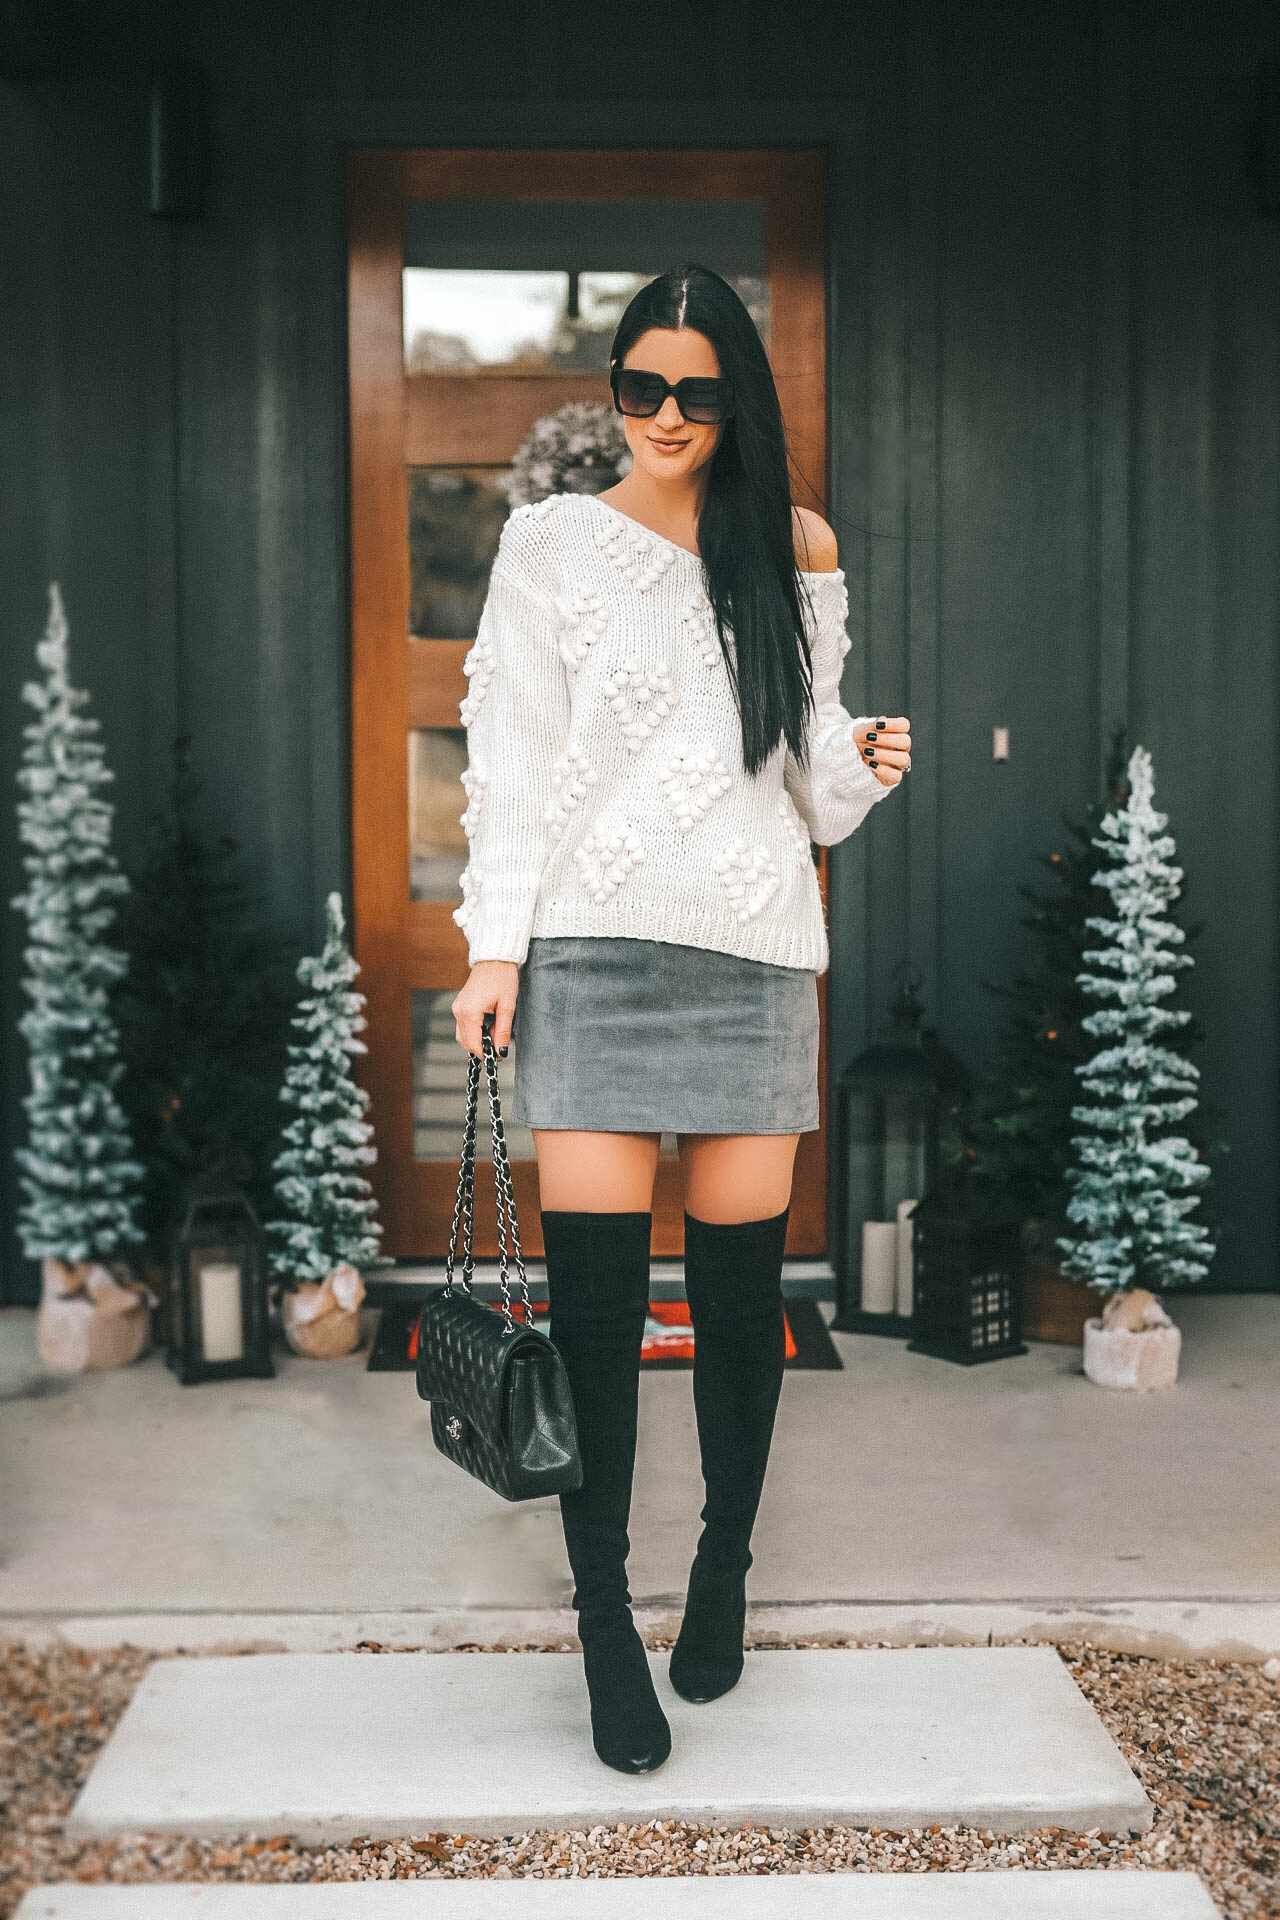 DTKAustin is sharing 10 Must Have knitted heart sweaters and cardigans from Chicwish for Fall and Winter. Suede OTK boots are Goodnight Macaroon, Handbag is a Chanel Jumbo, Suede skirt from BlankNYC. | Knit Cardigan for Fall | how to style a knit cardigan | knit cardigan outfit || Dressed to Kill #fashion #style #womensoutfit #womensfashion #cardigan #knit #knitcardigan #fallstyle #streetstyle #fallfashion #dtkaustin | Cozy Sweaters from Dressed to Kill